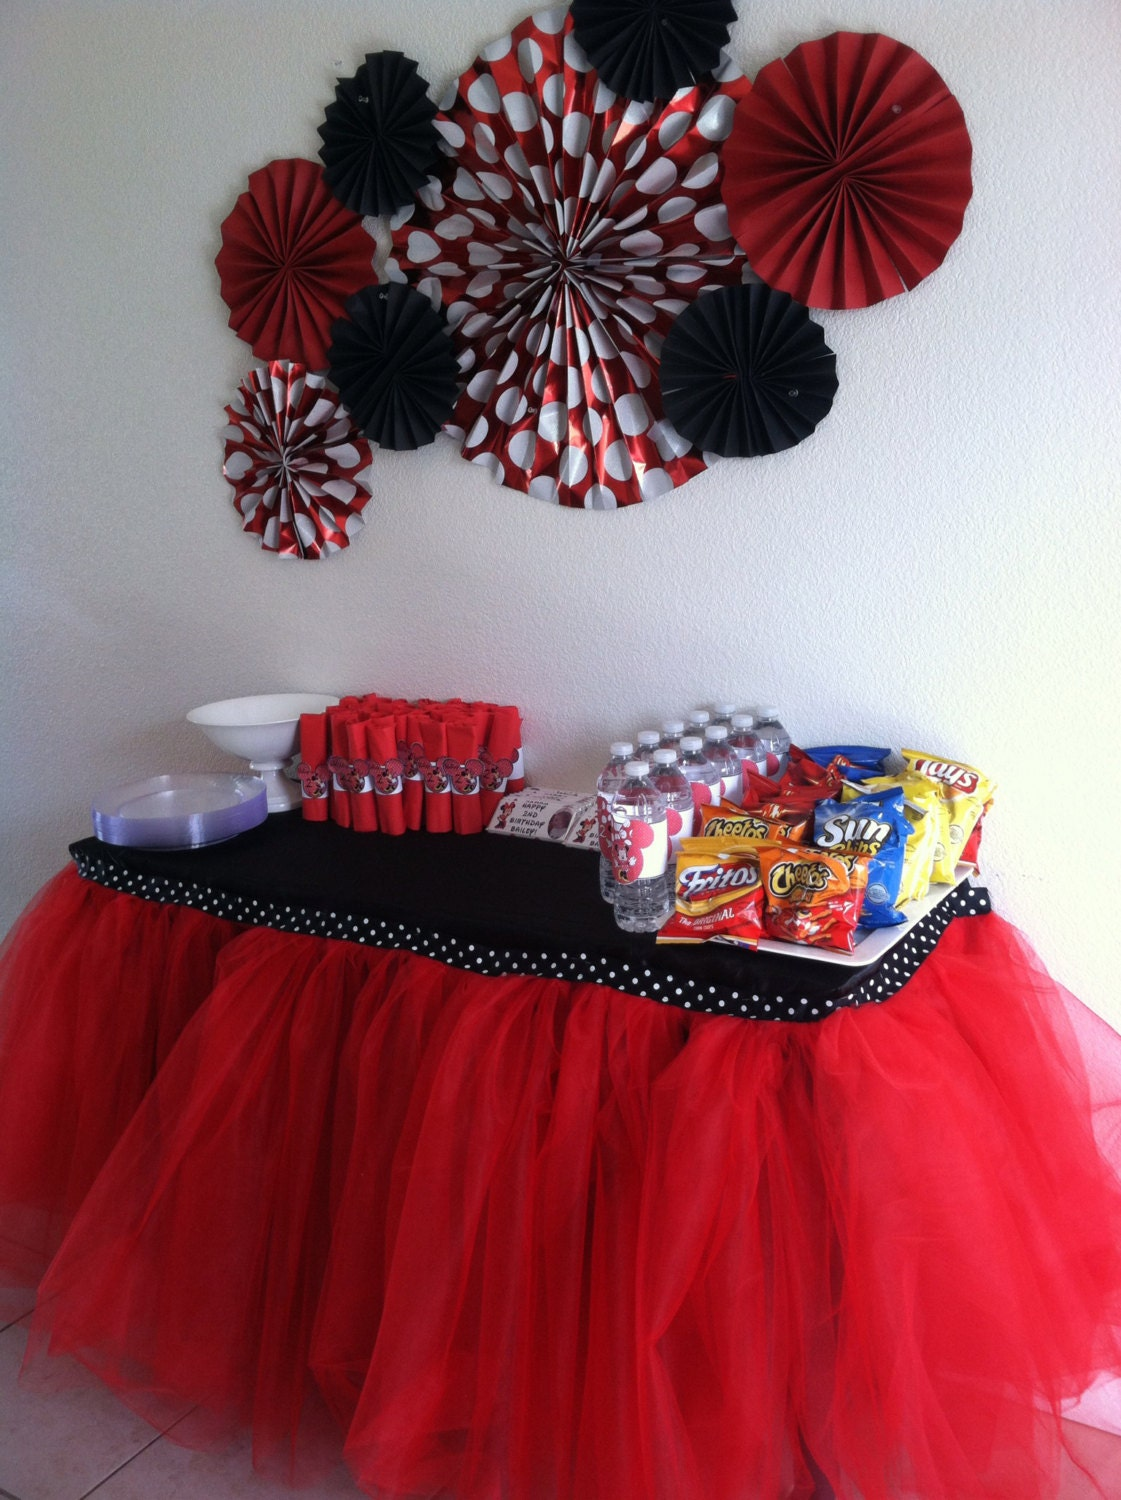 Lady bug minnie mouse polka dot tulle tutu table skirt for Red and white polka dot decorations